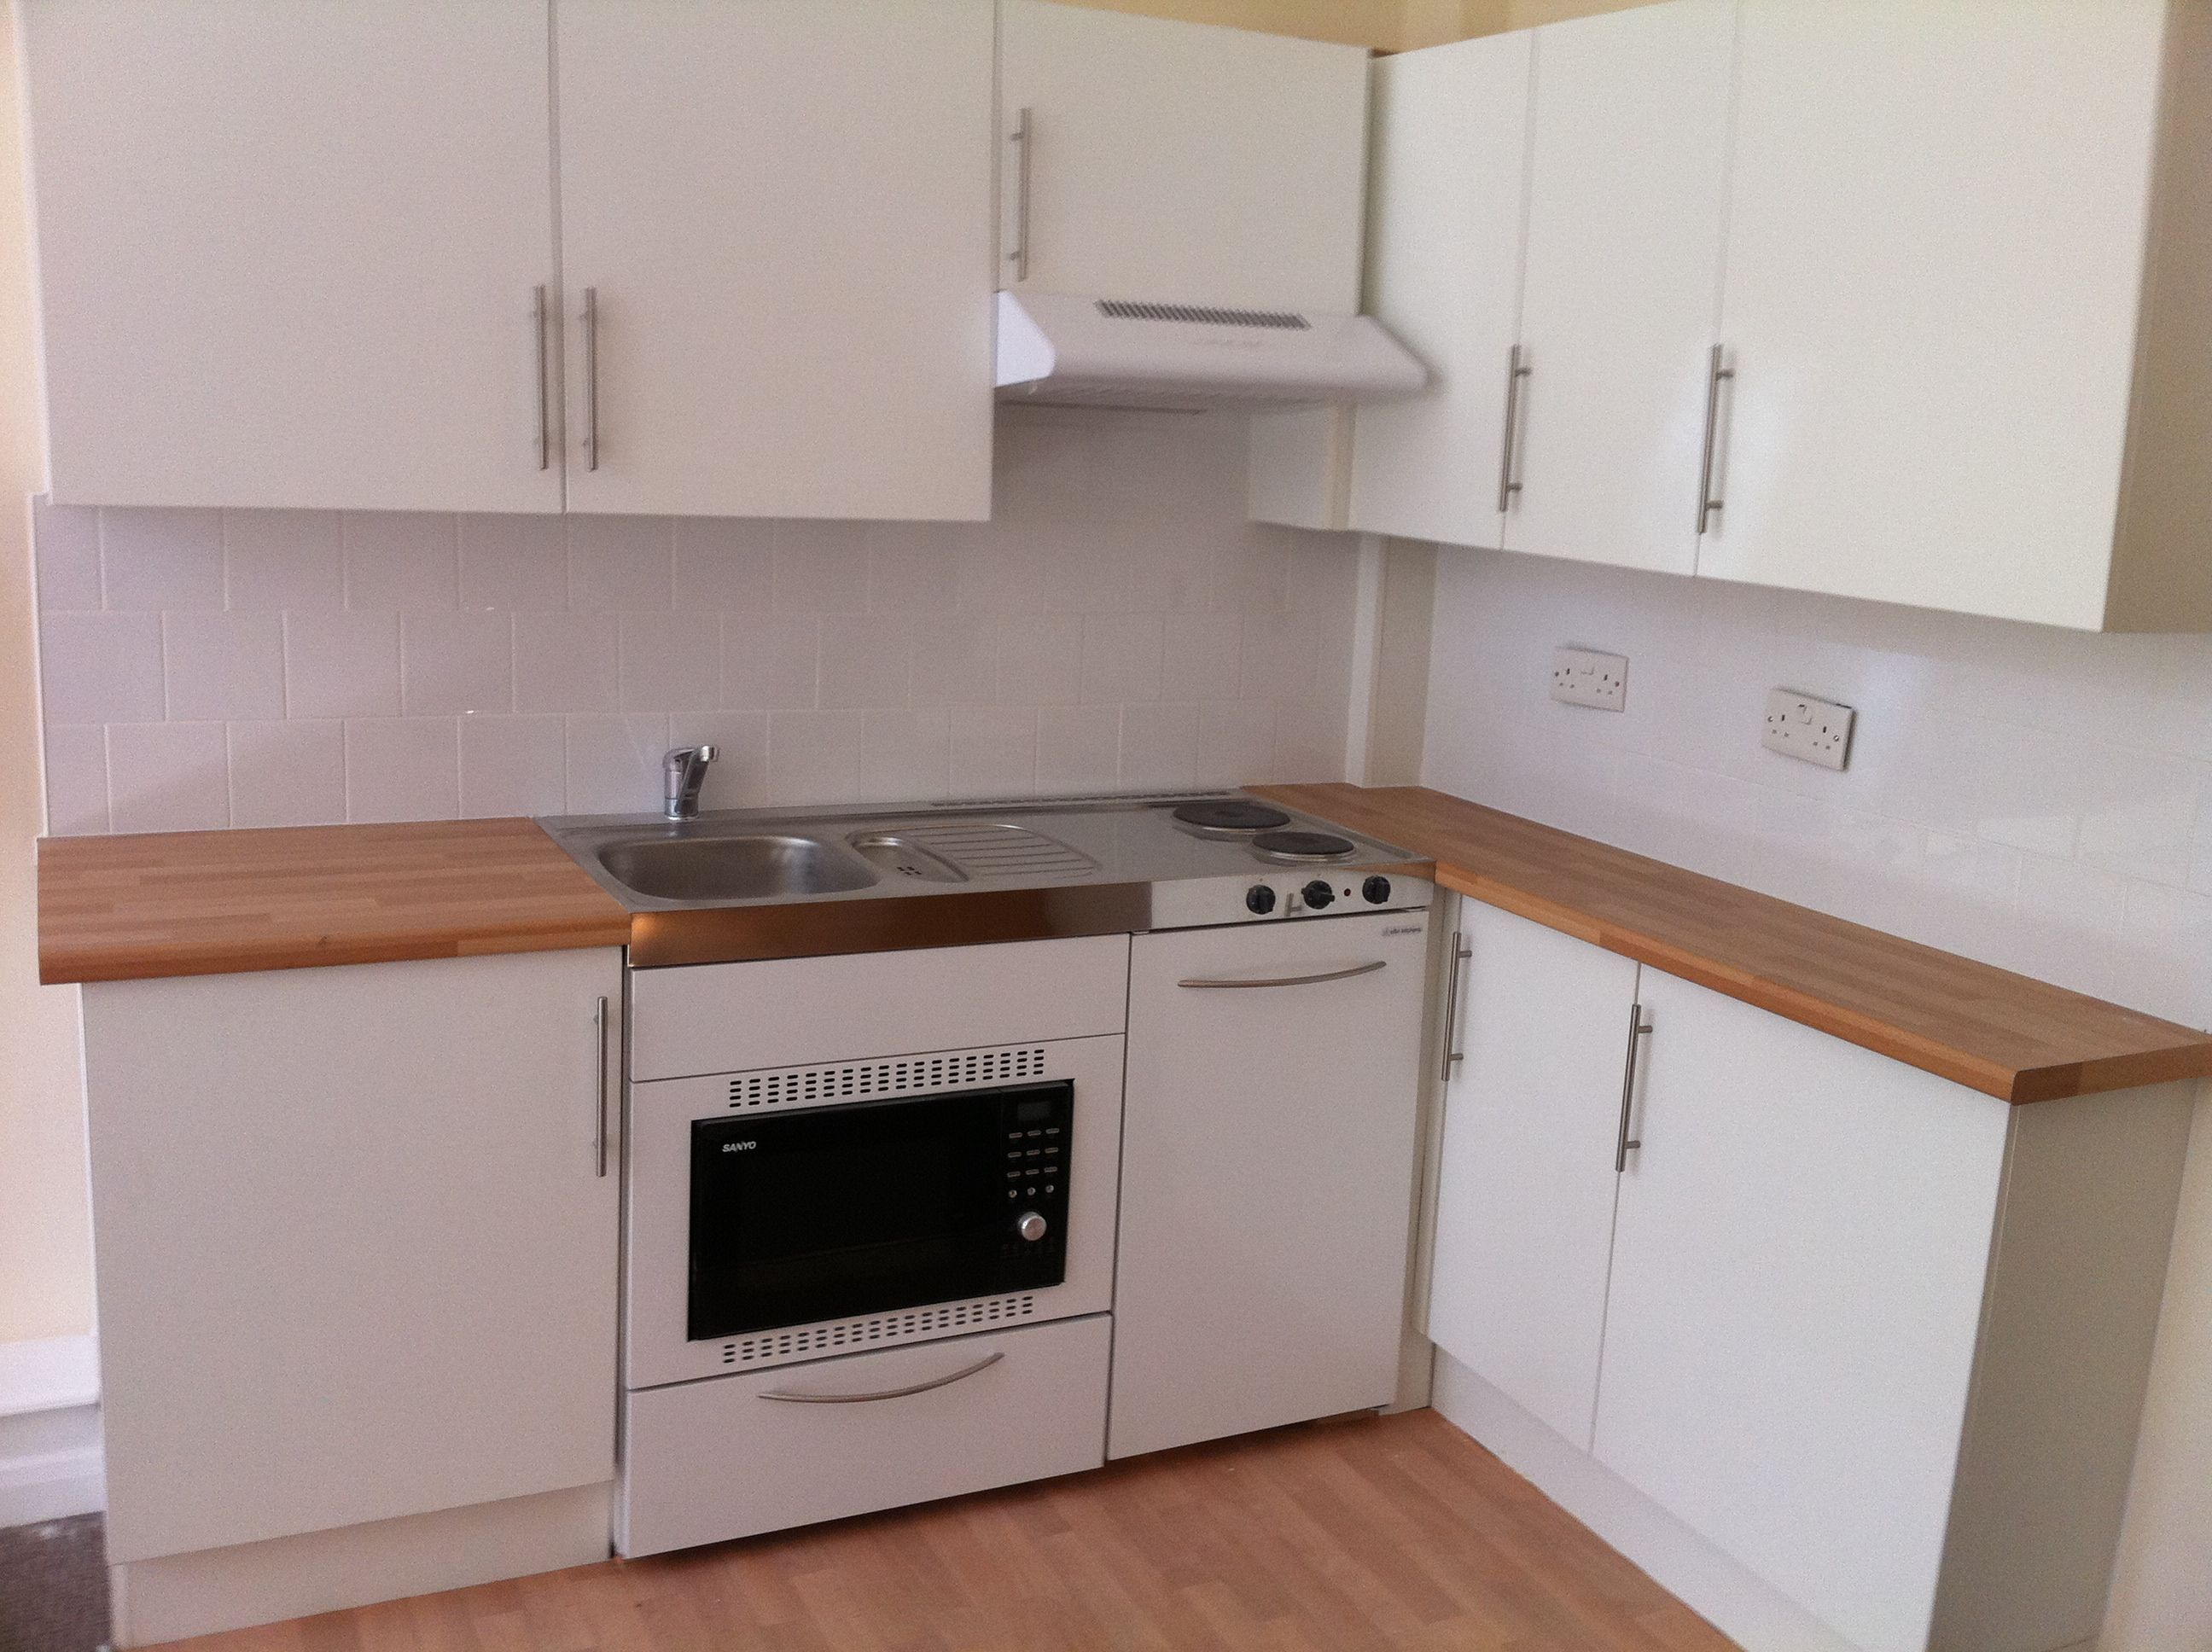 Kitchens For Small Flats Studio Flat Luton Elfin Kitchens Simple Living Small Homes